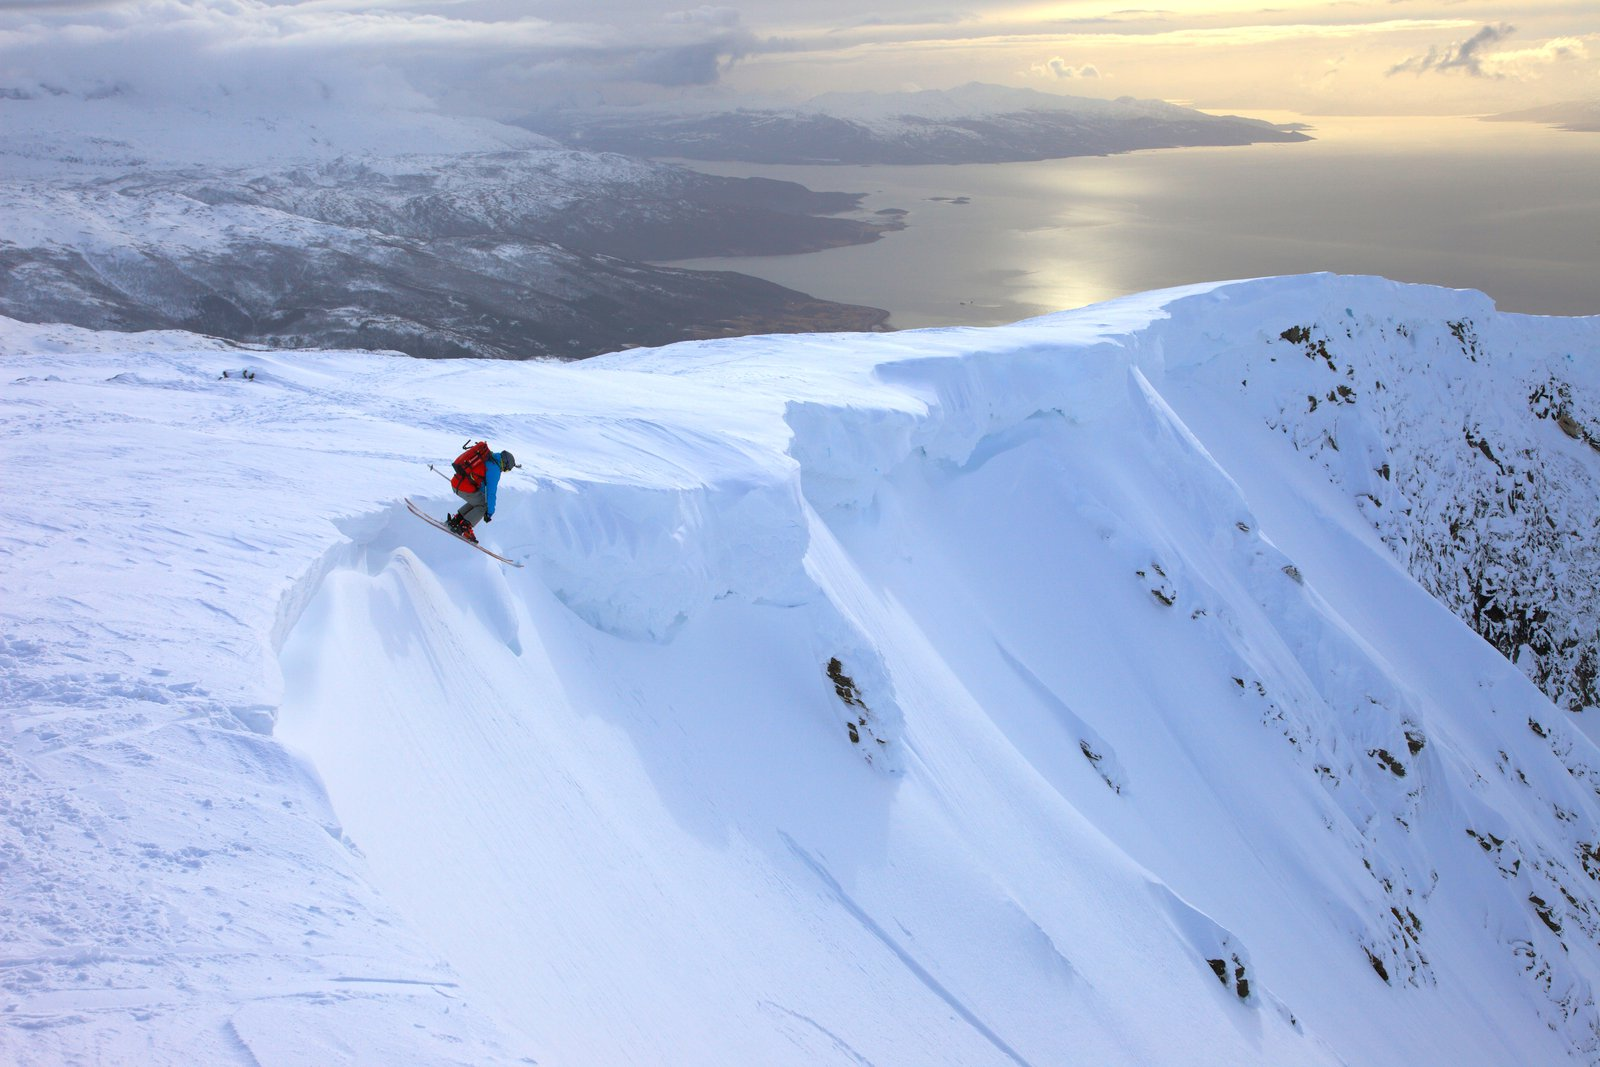 Dropping in over Norwegian fjords